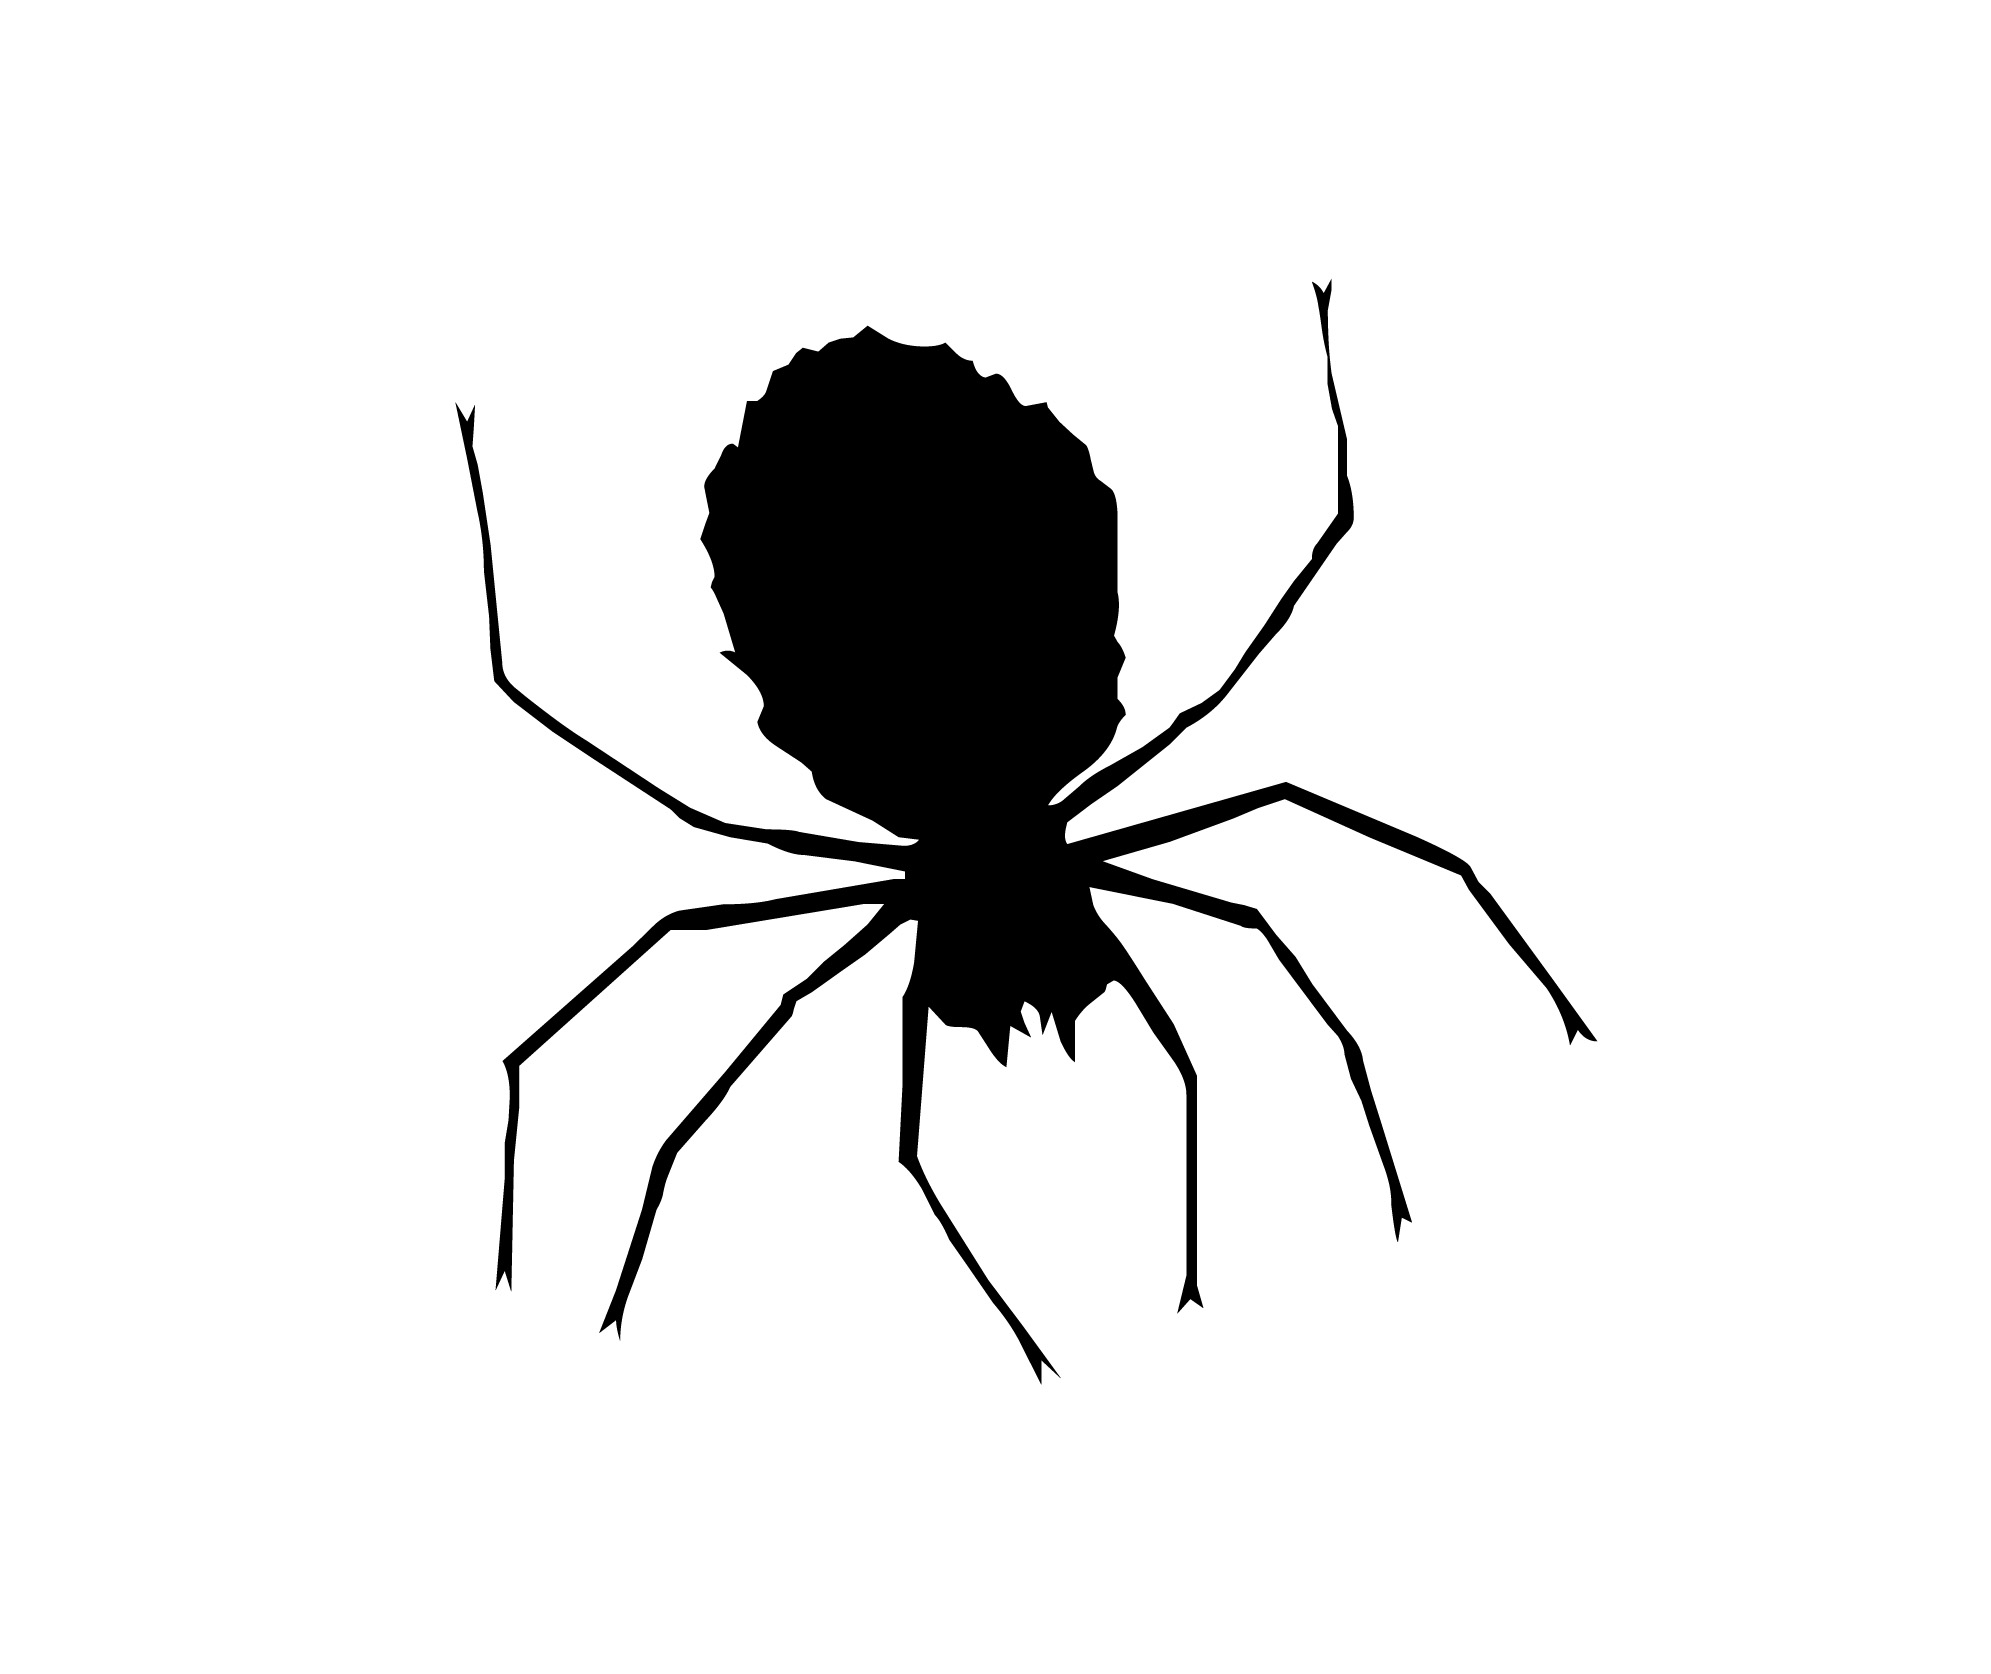 Drawn spider silhouette Spider%20clipart White And Images Black